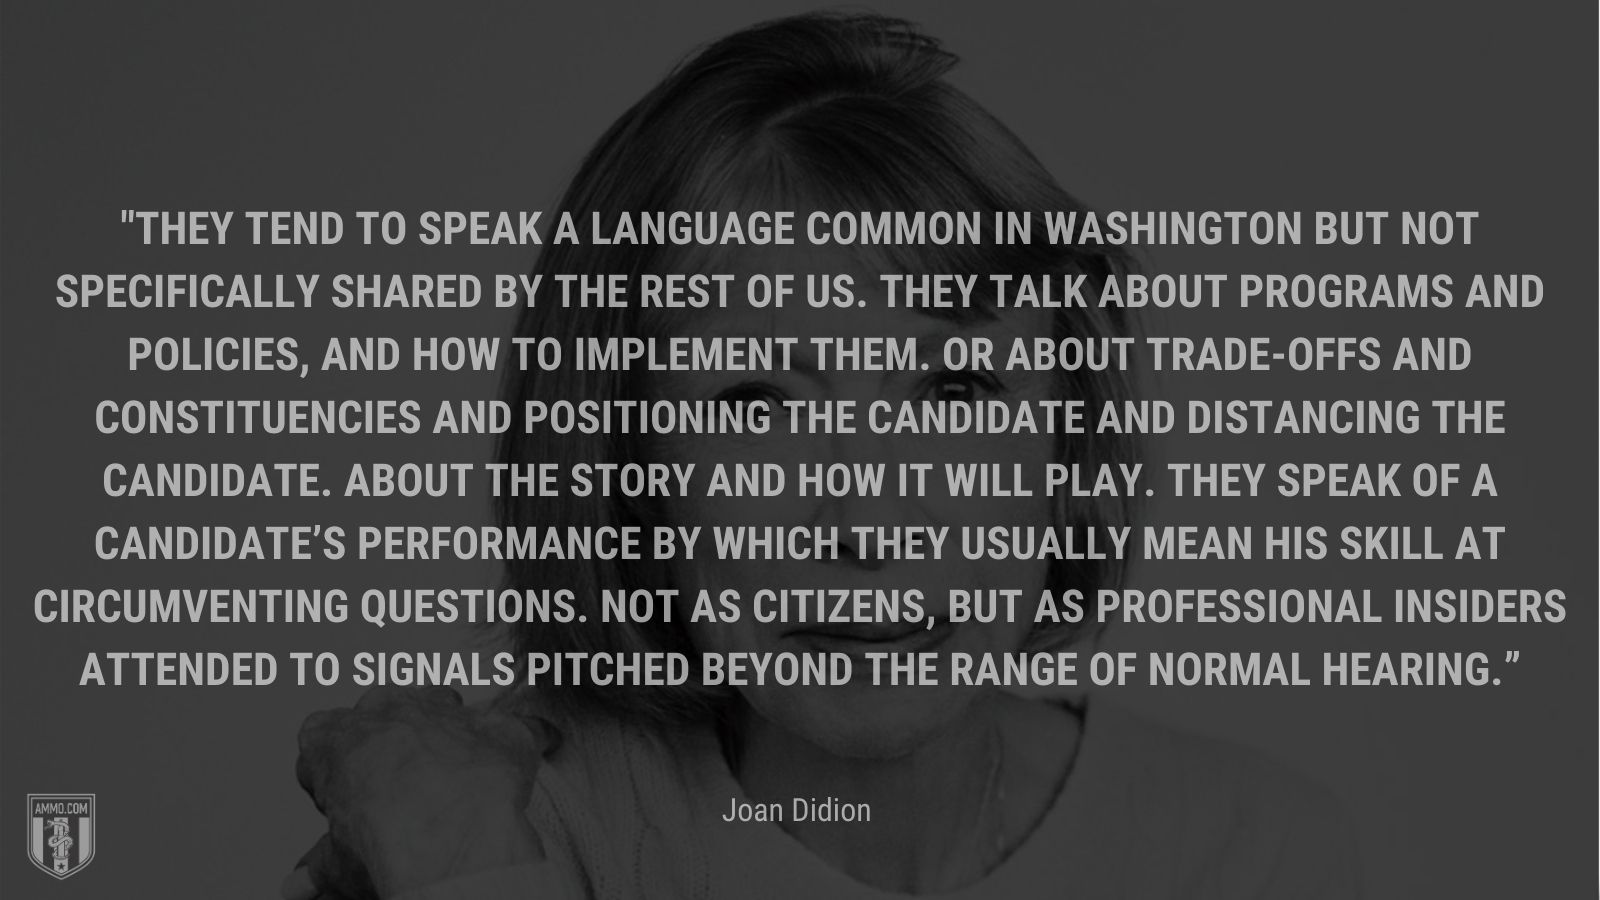 """""""They tend to speak a language common in Washington but not specifically shared by the rest of us. They talk about programs and policies, and how to implement them. Or about trade-offs and constituencies and positioning the candidate and distancing the candidate. About the story and how it will play. They speak of a candidate's performance by which they usually mean his skill at circumventing questions. Not as citizens, but as professional insiders attended to signals pitched beyond the range of normal hearing."""" - Joan Didion"""